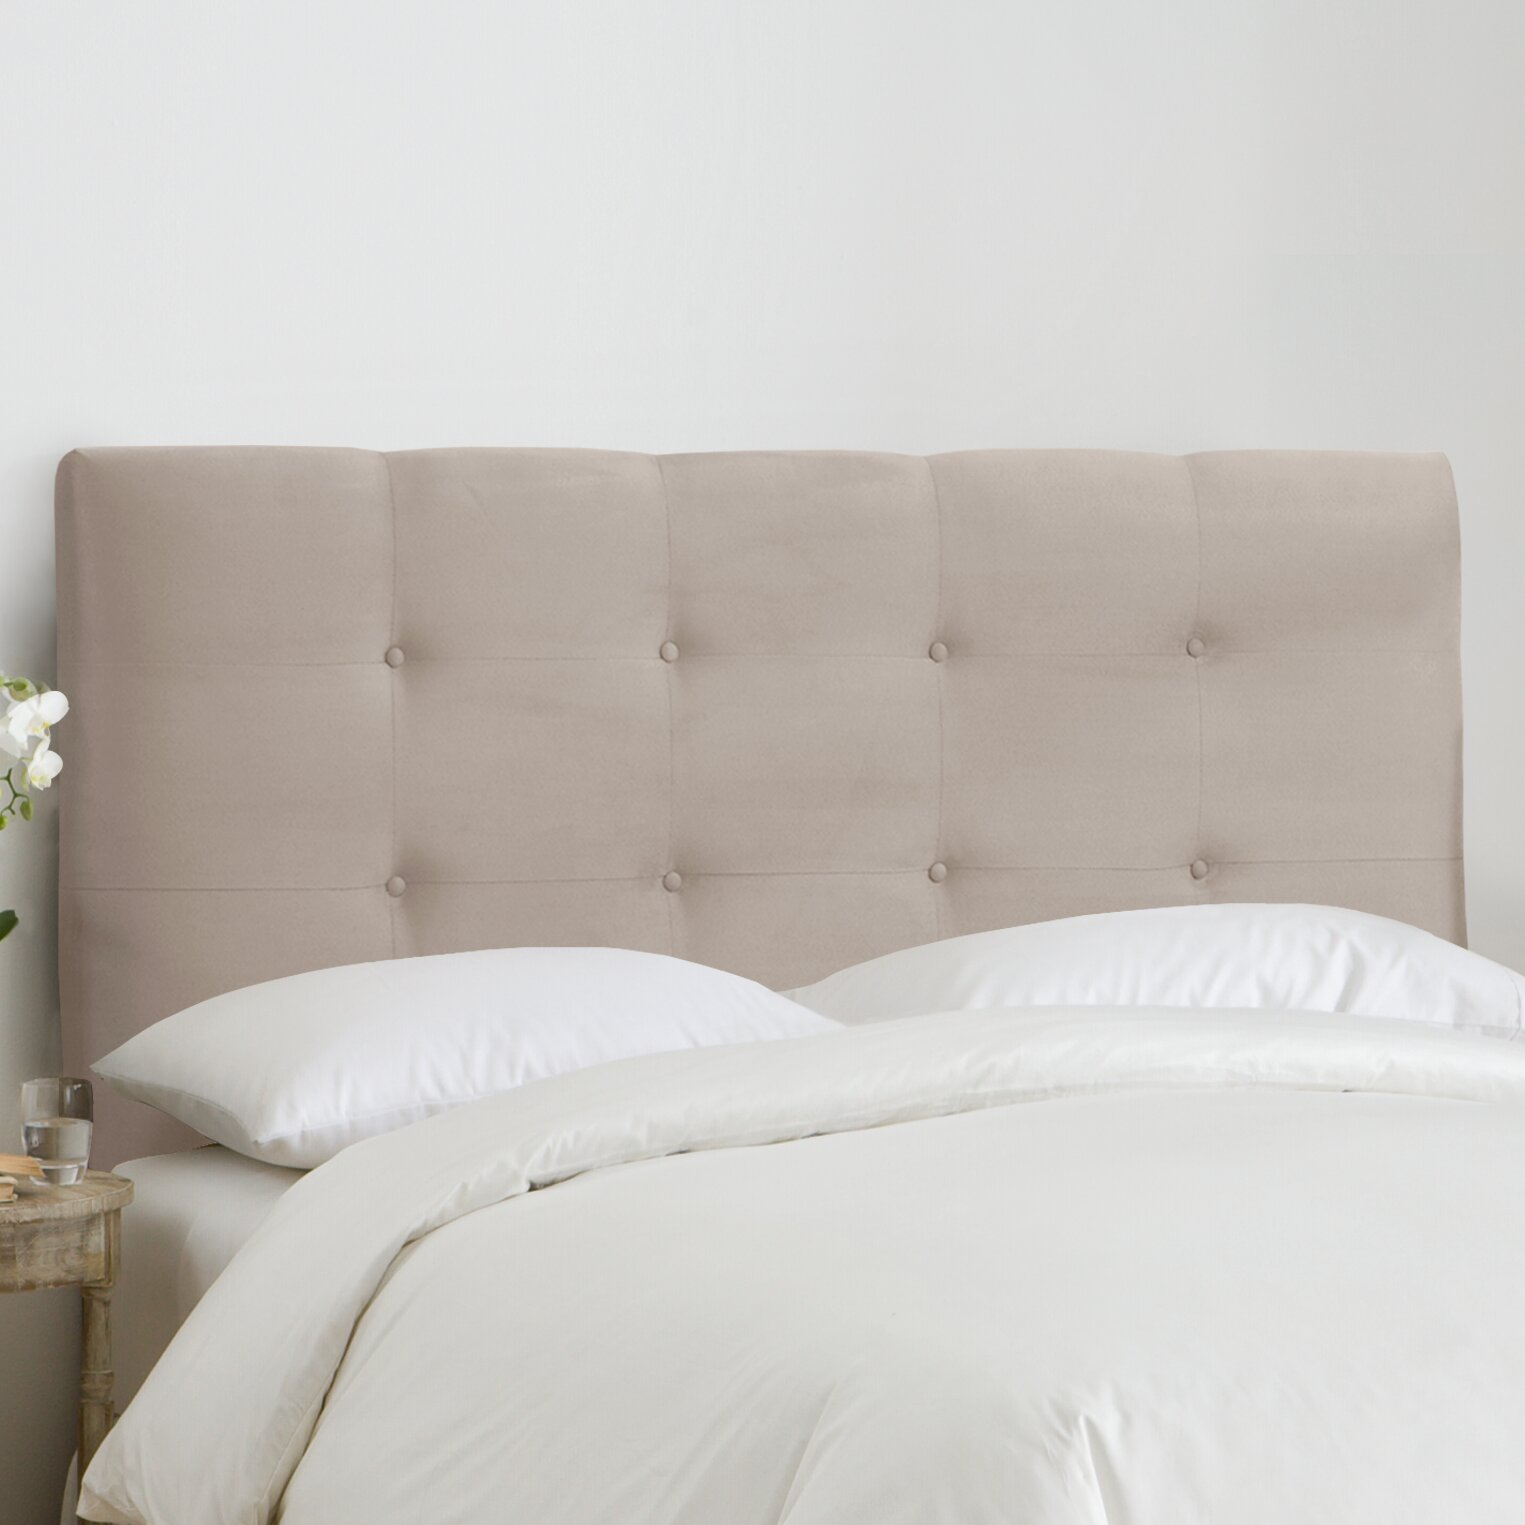 28 upholstered panel headboard pri upholstered panel headbo